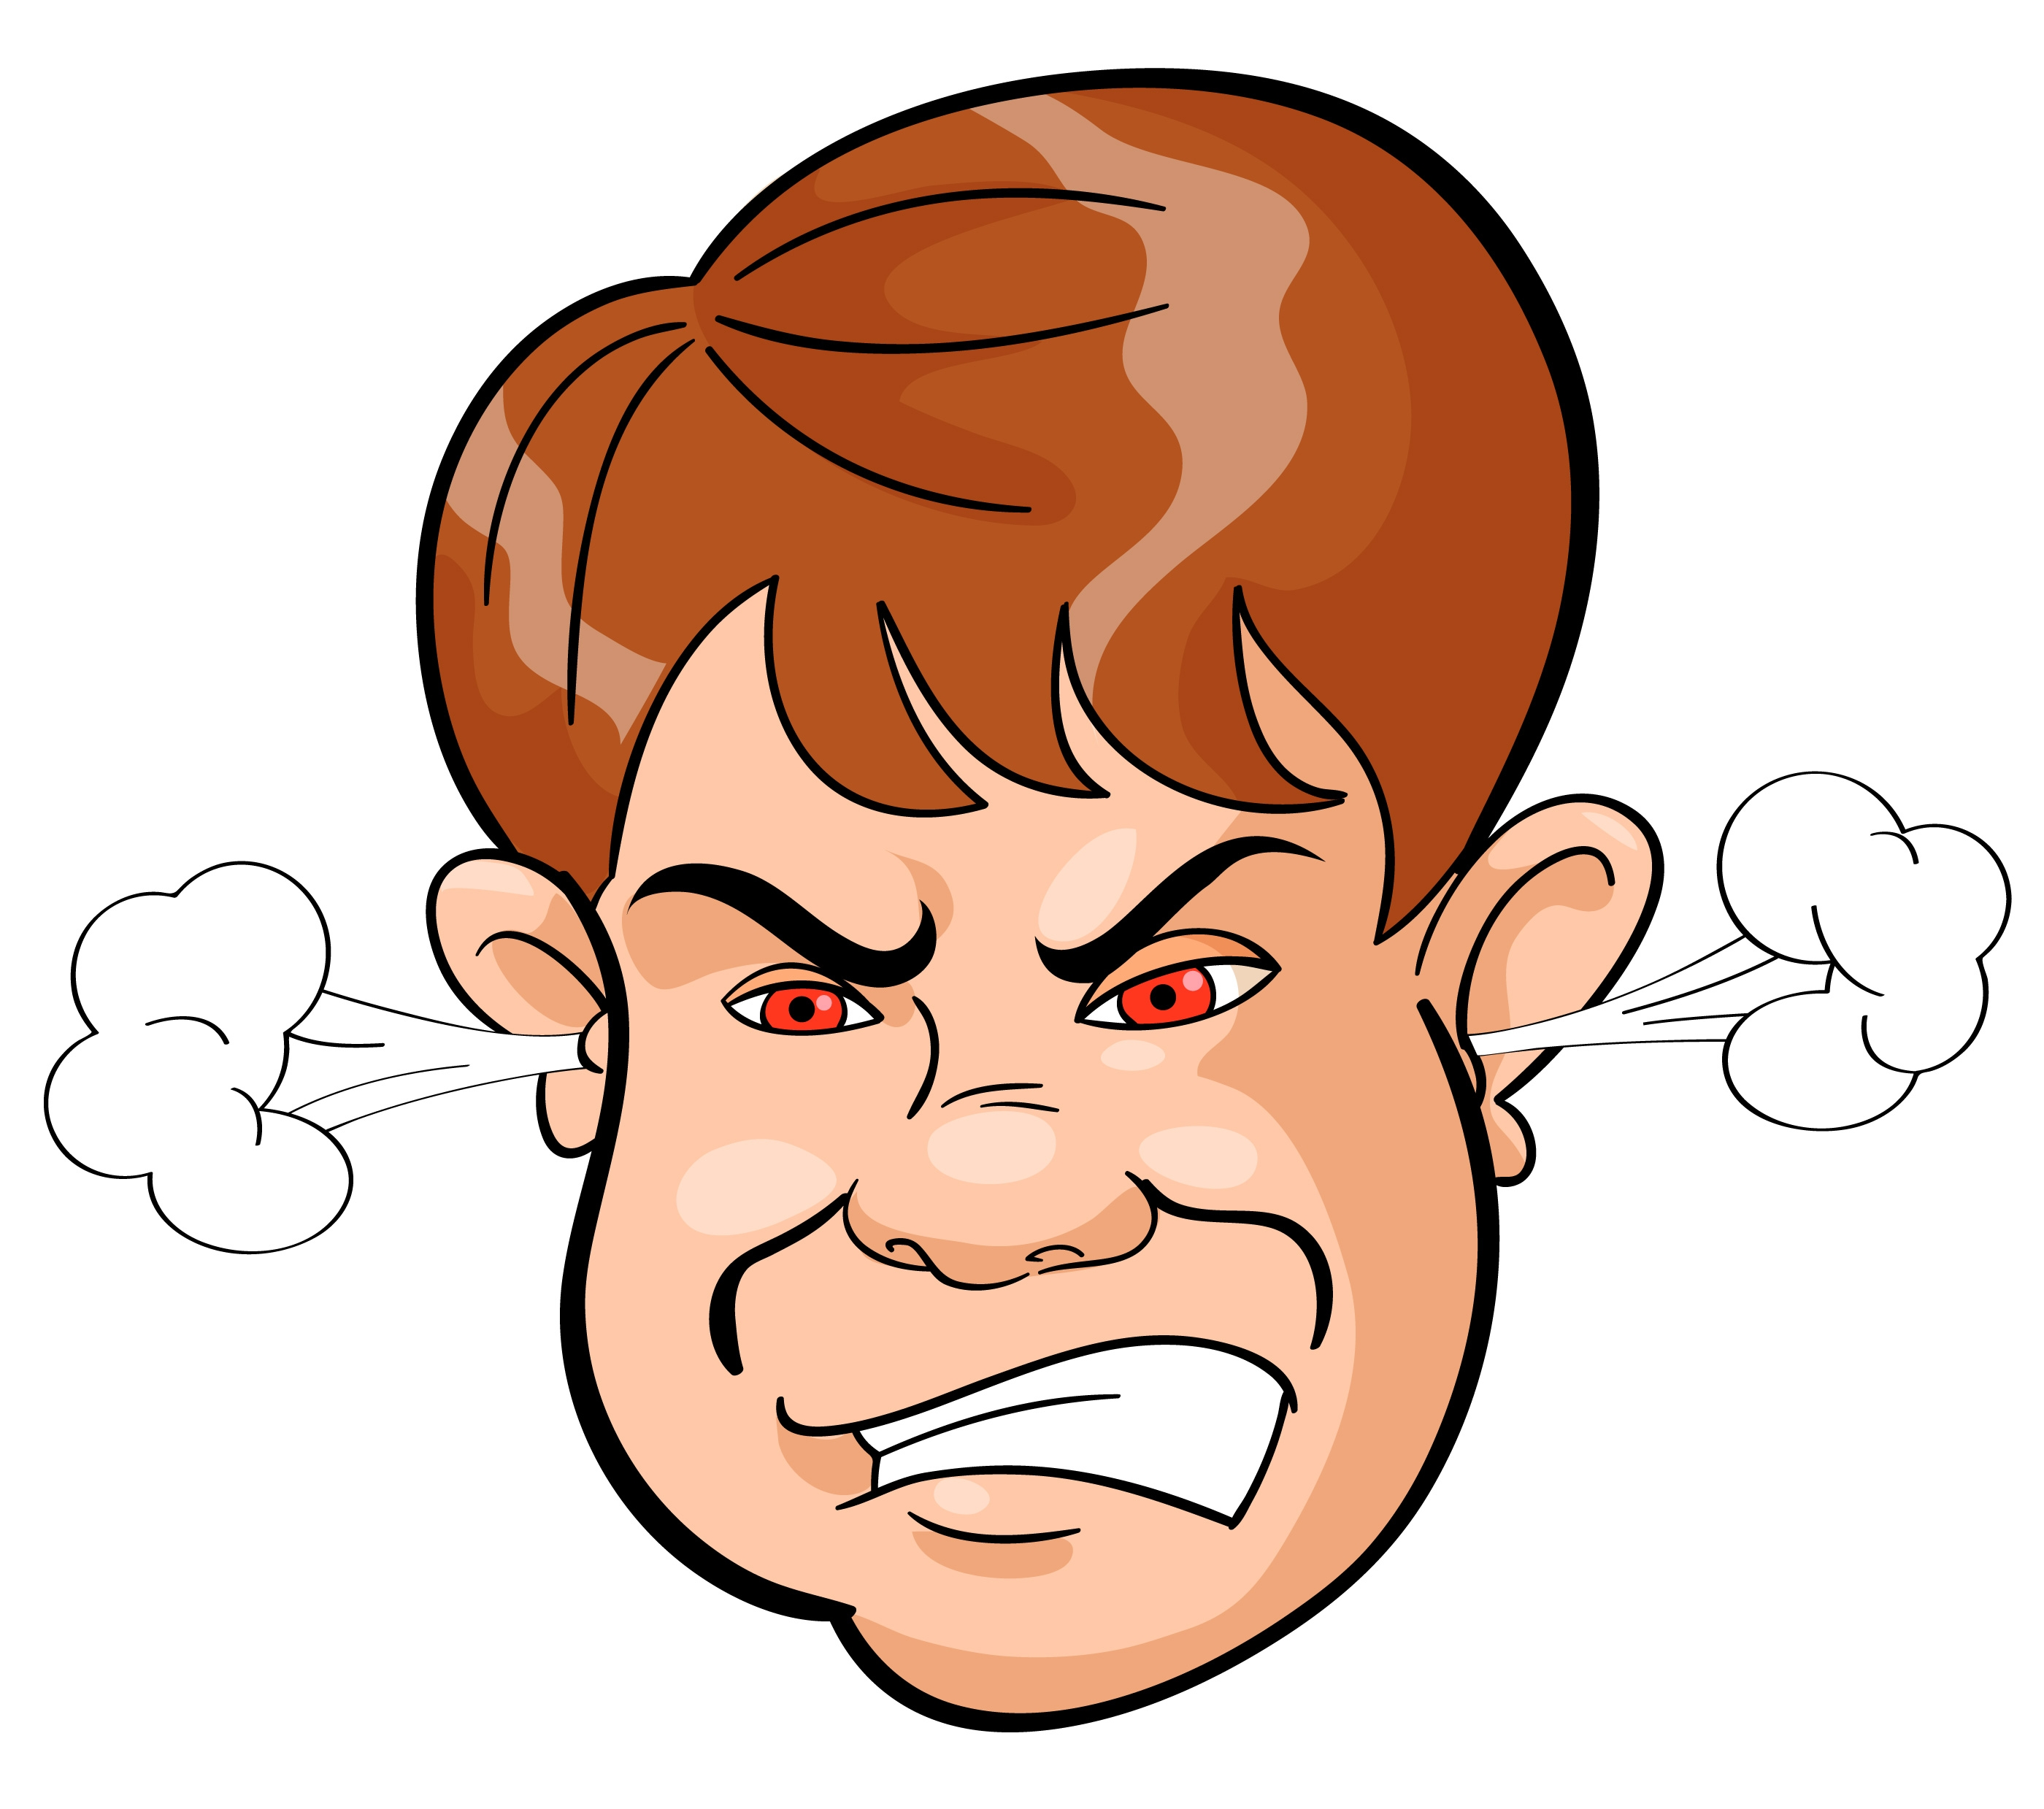 Anger clipart clip art. Unique angry gallery digital